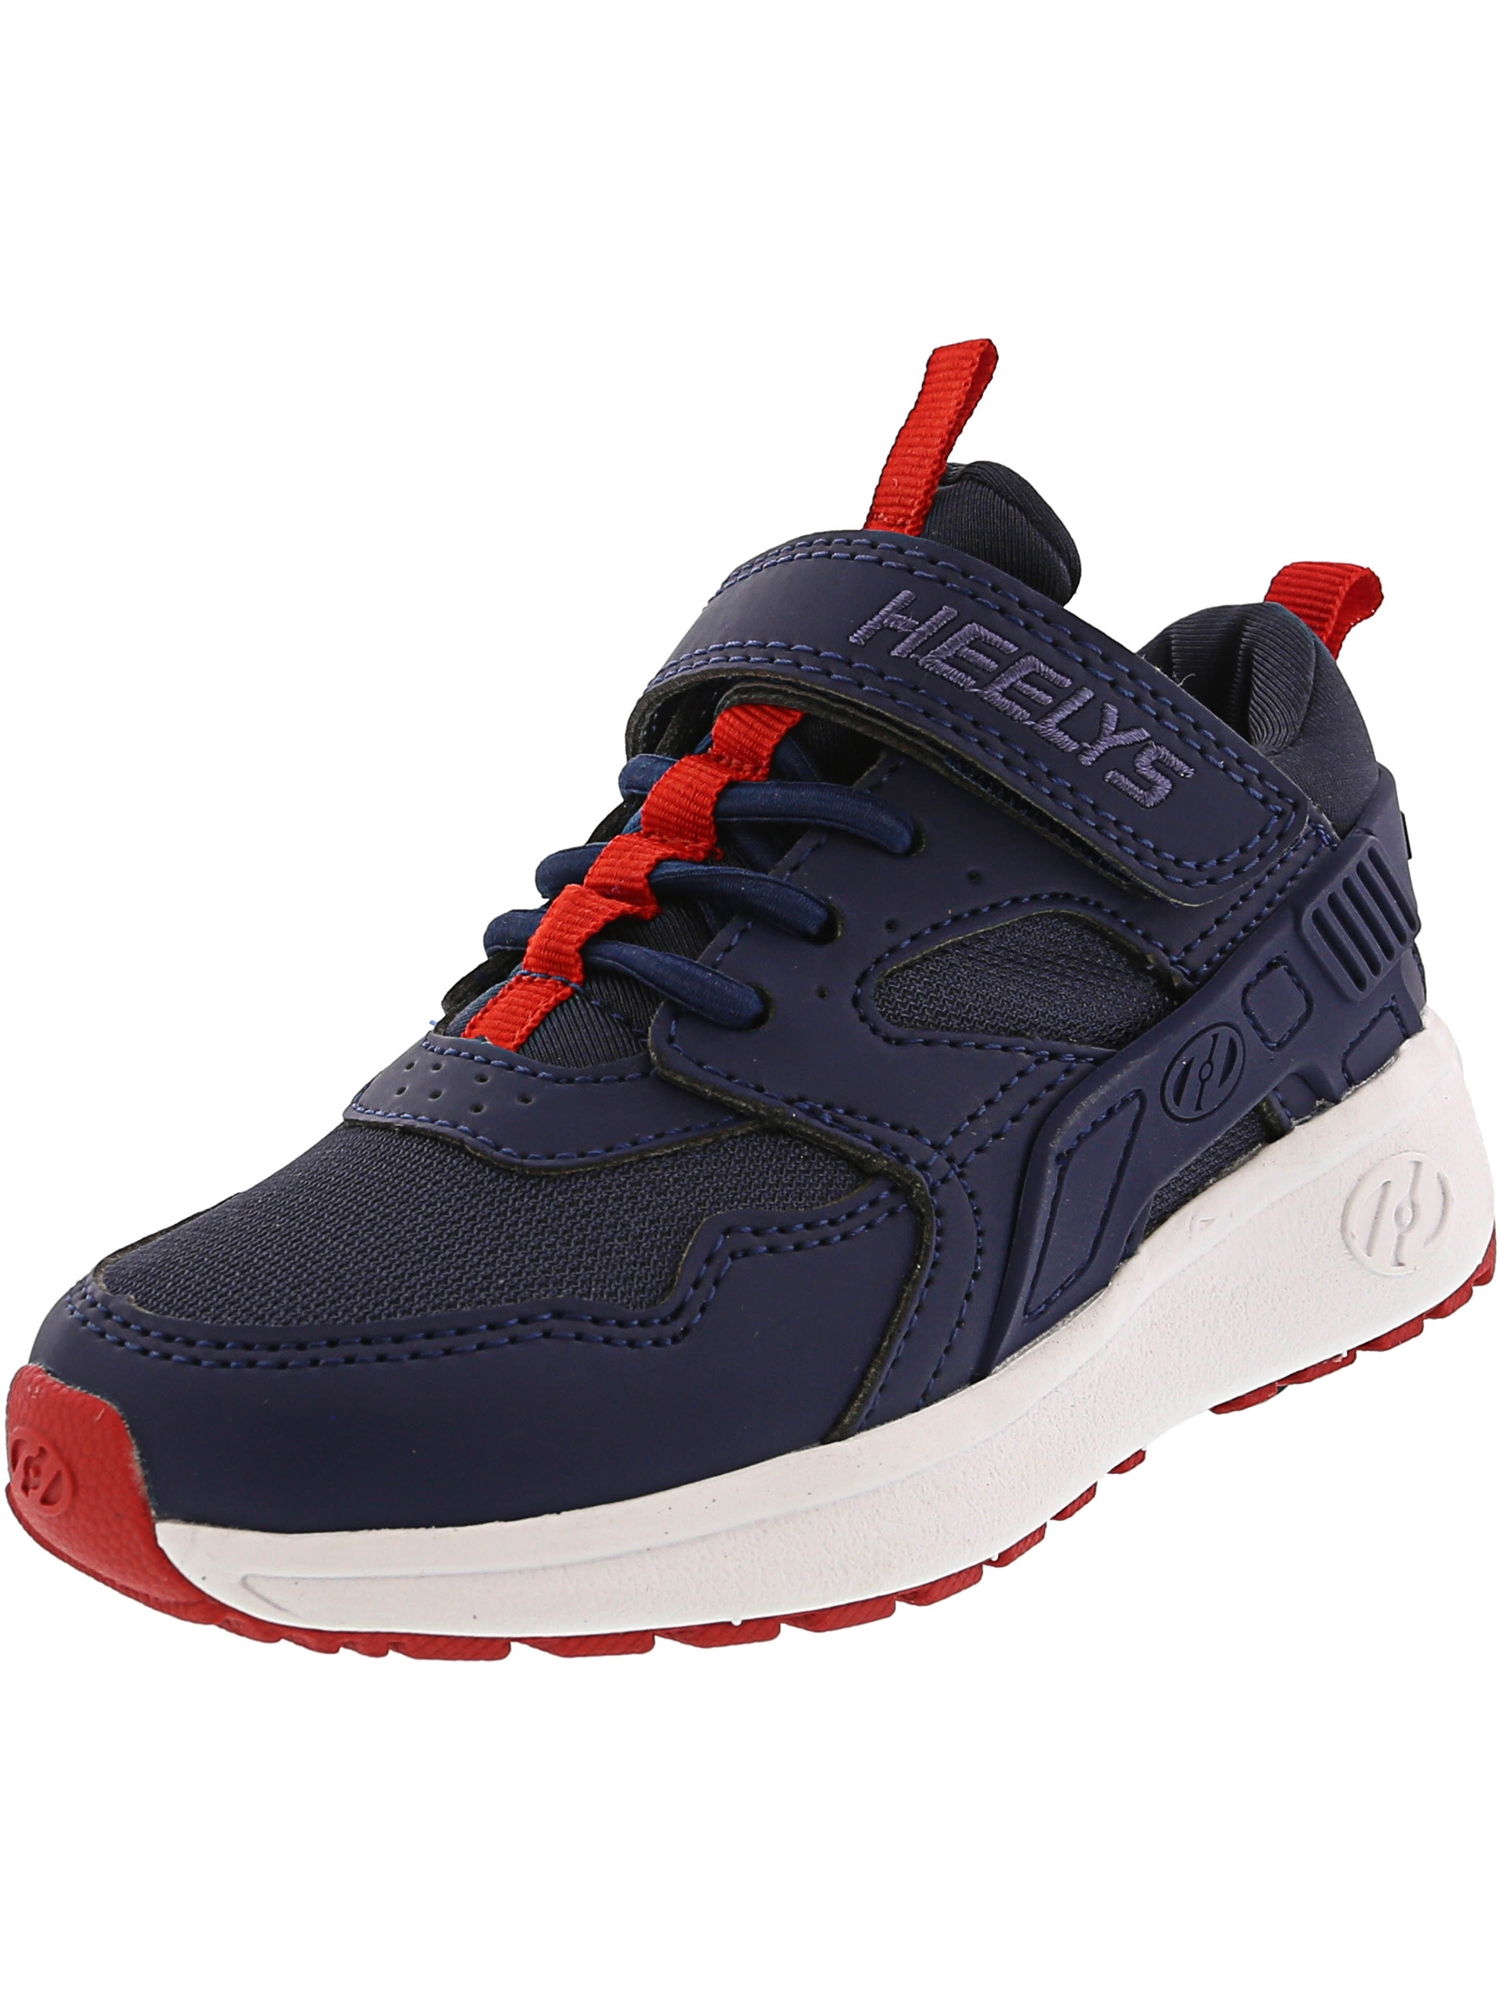 Heelys Force X2 Navy / Red Ankle-High Walking Shoe - 12M